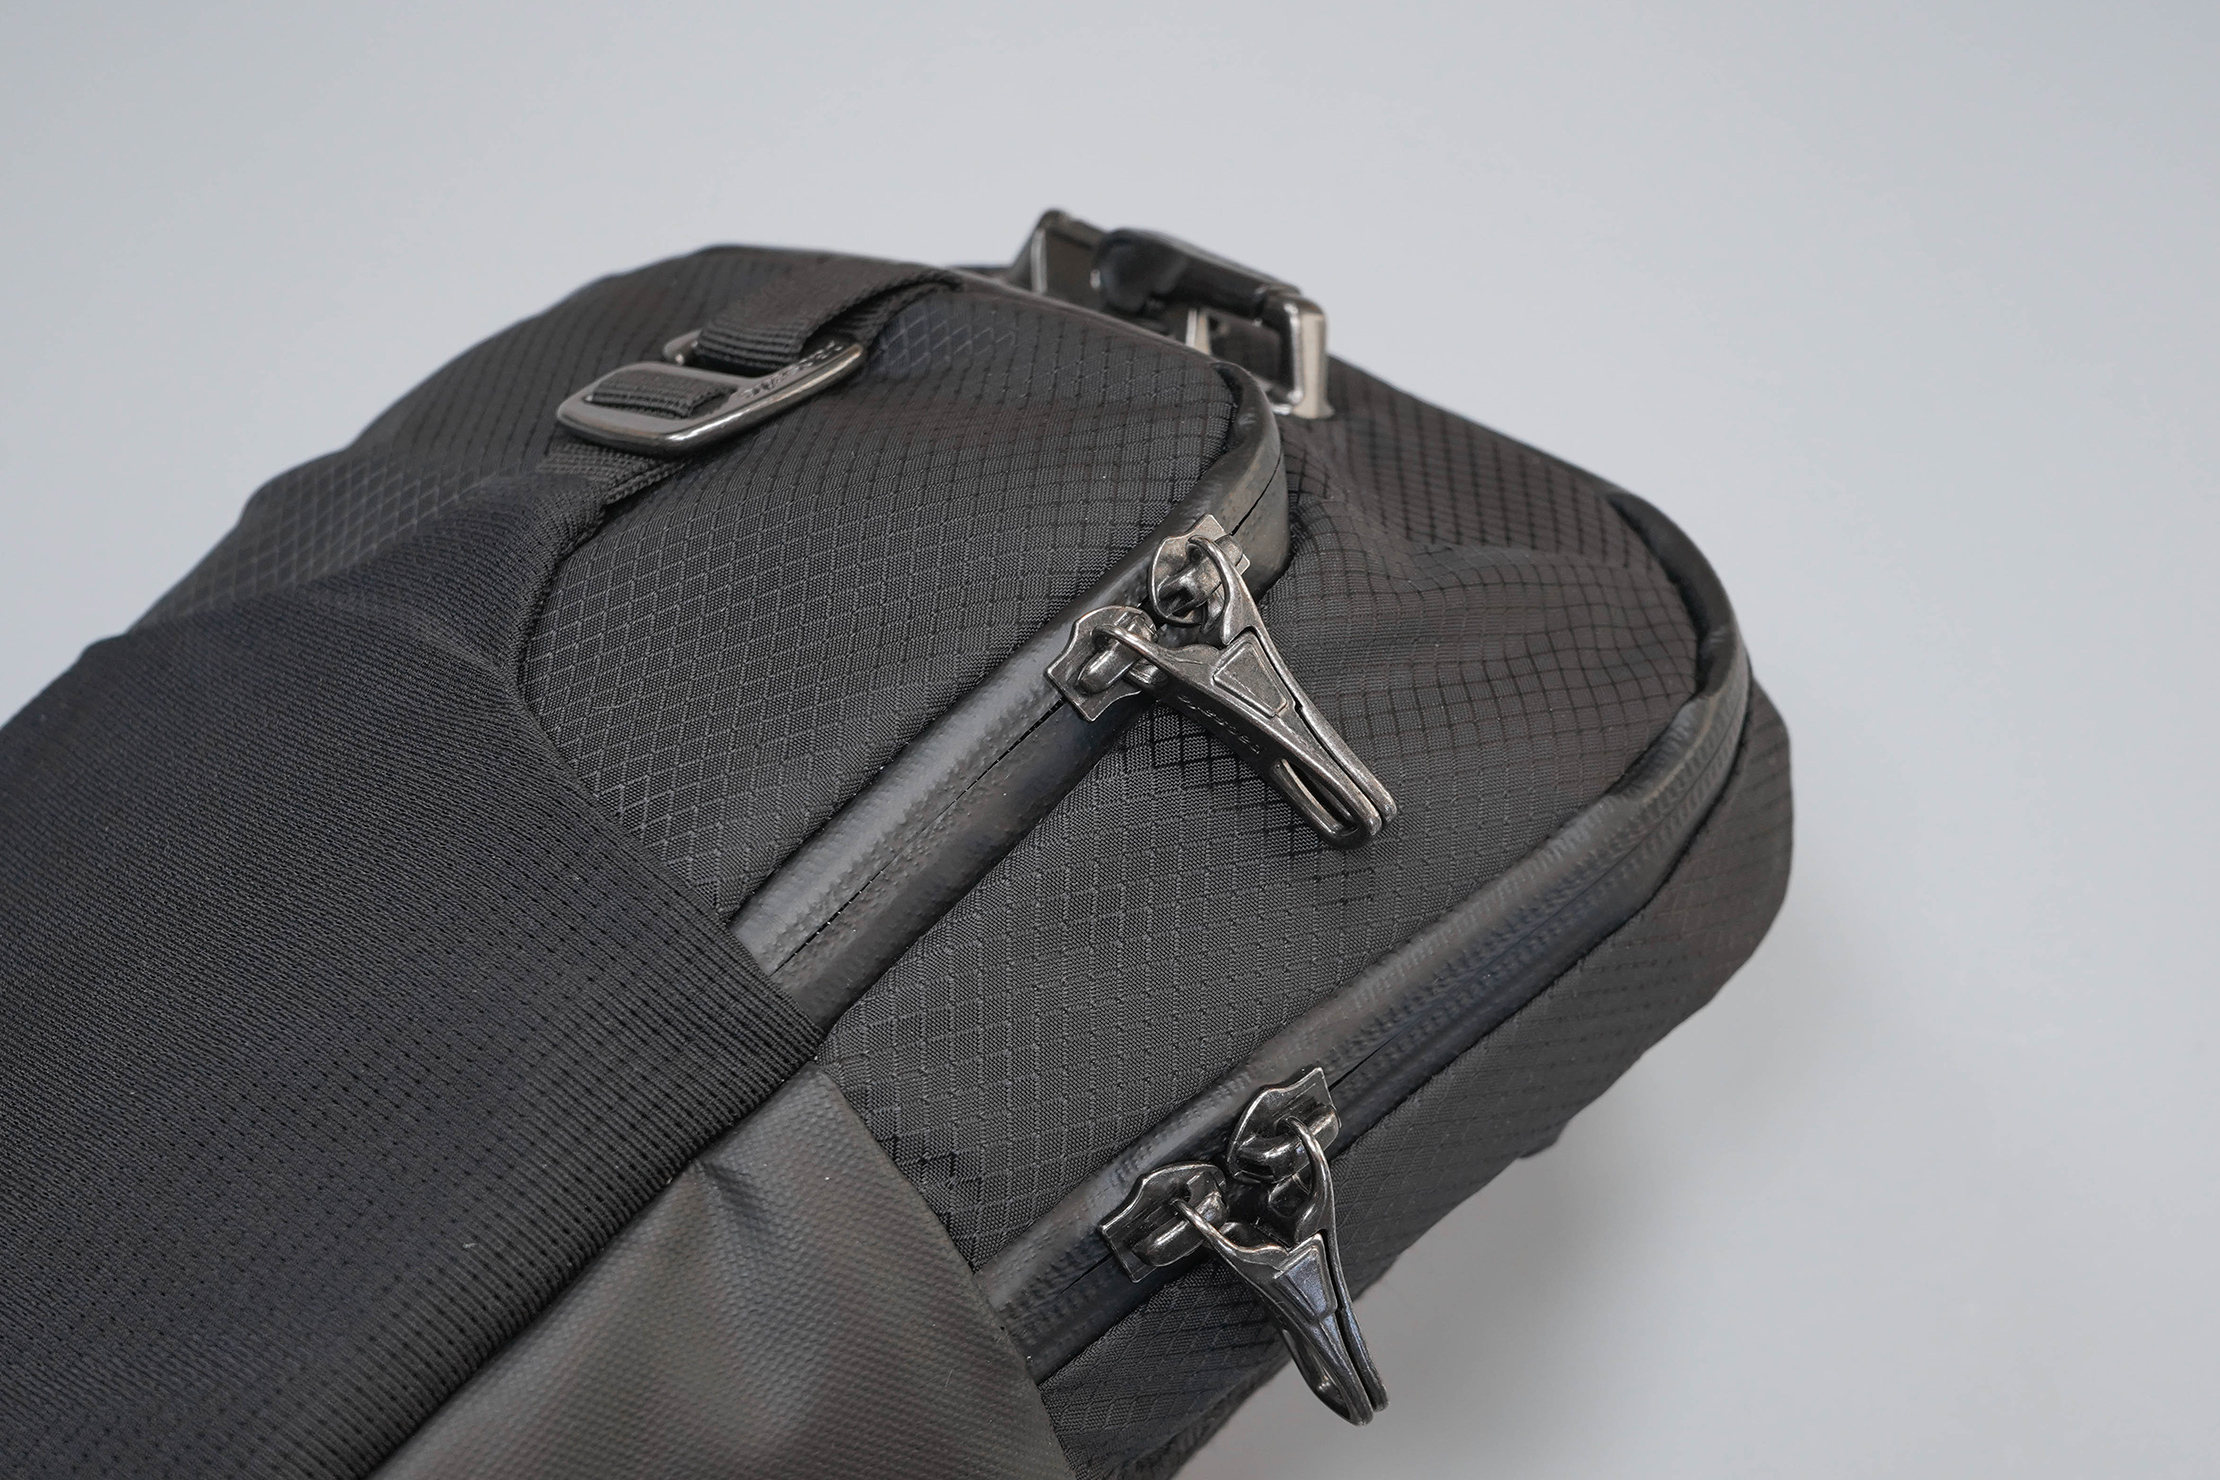 Pacsafe Venturesafe X Anti-Theft Sling Pack Zippers